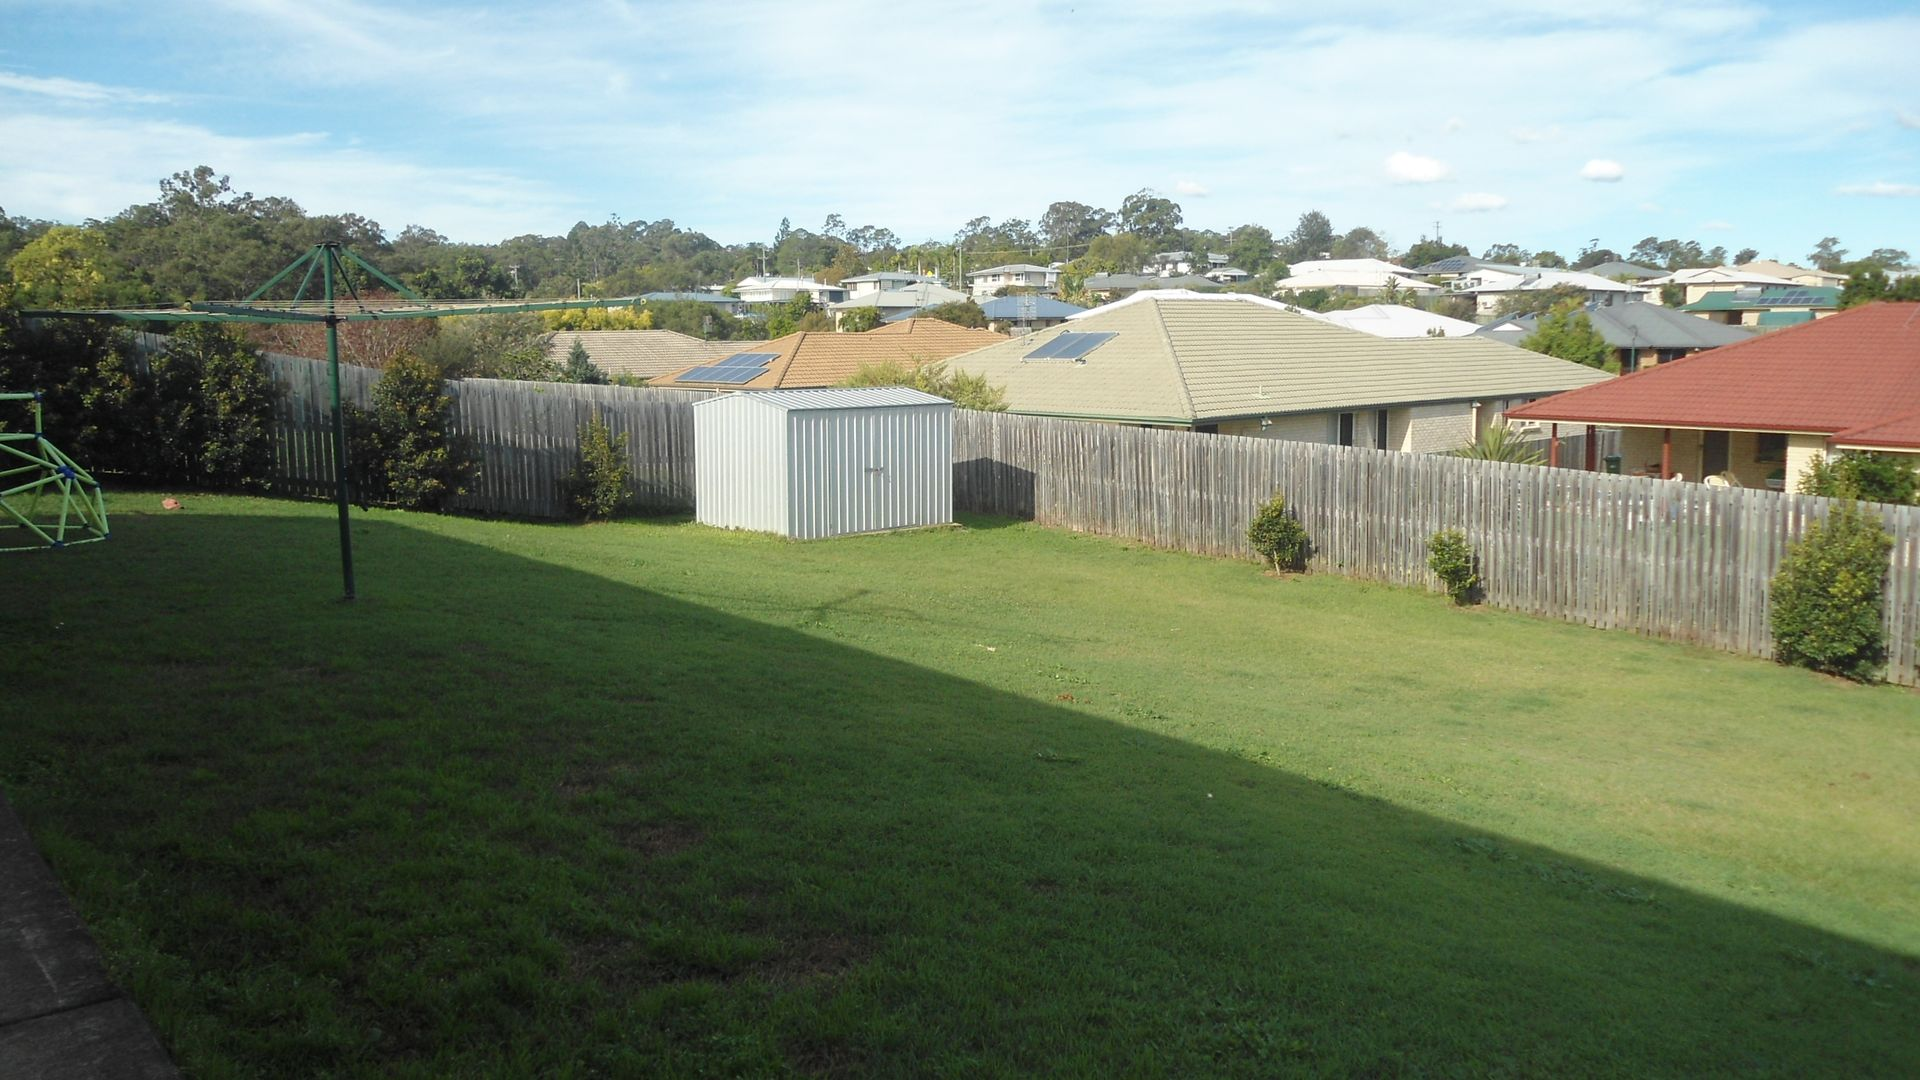 86 Cartwright Road, Gympie QLD 4570, Image 9